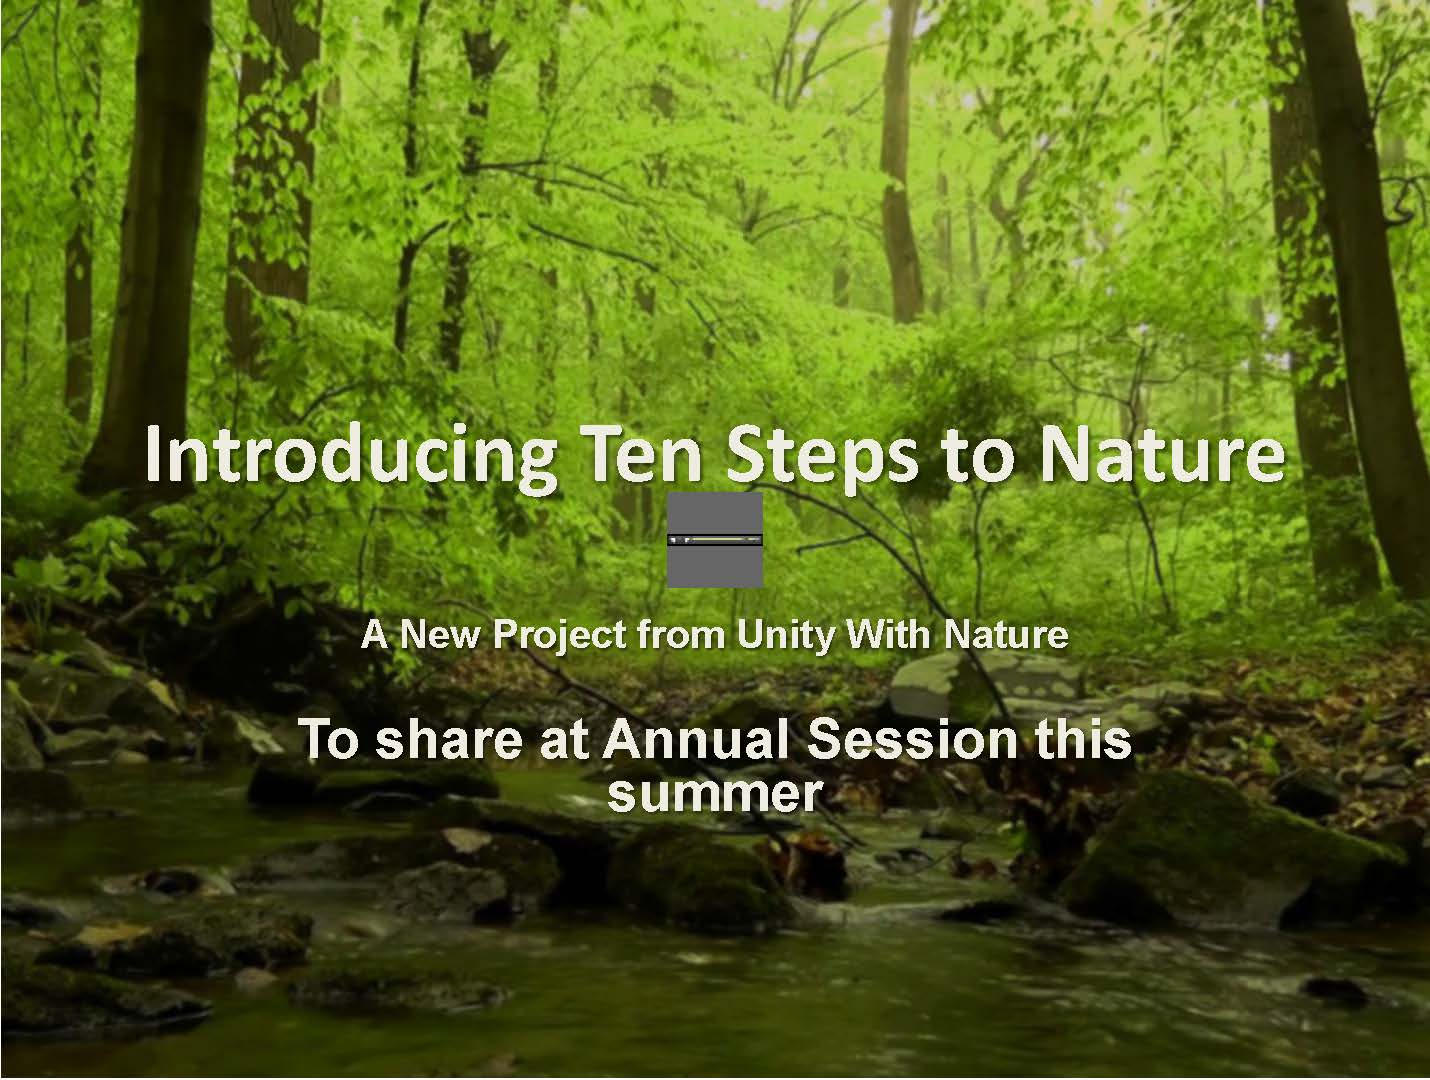 Ten Steps to Nature Video Project